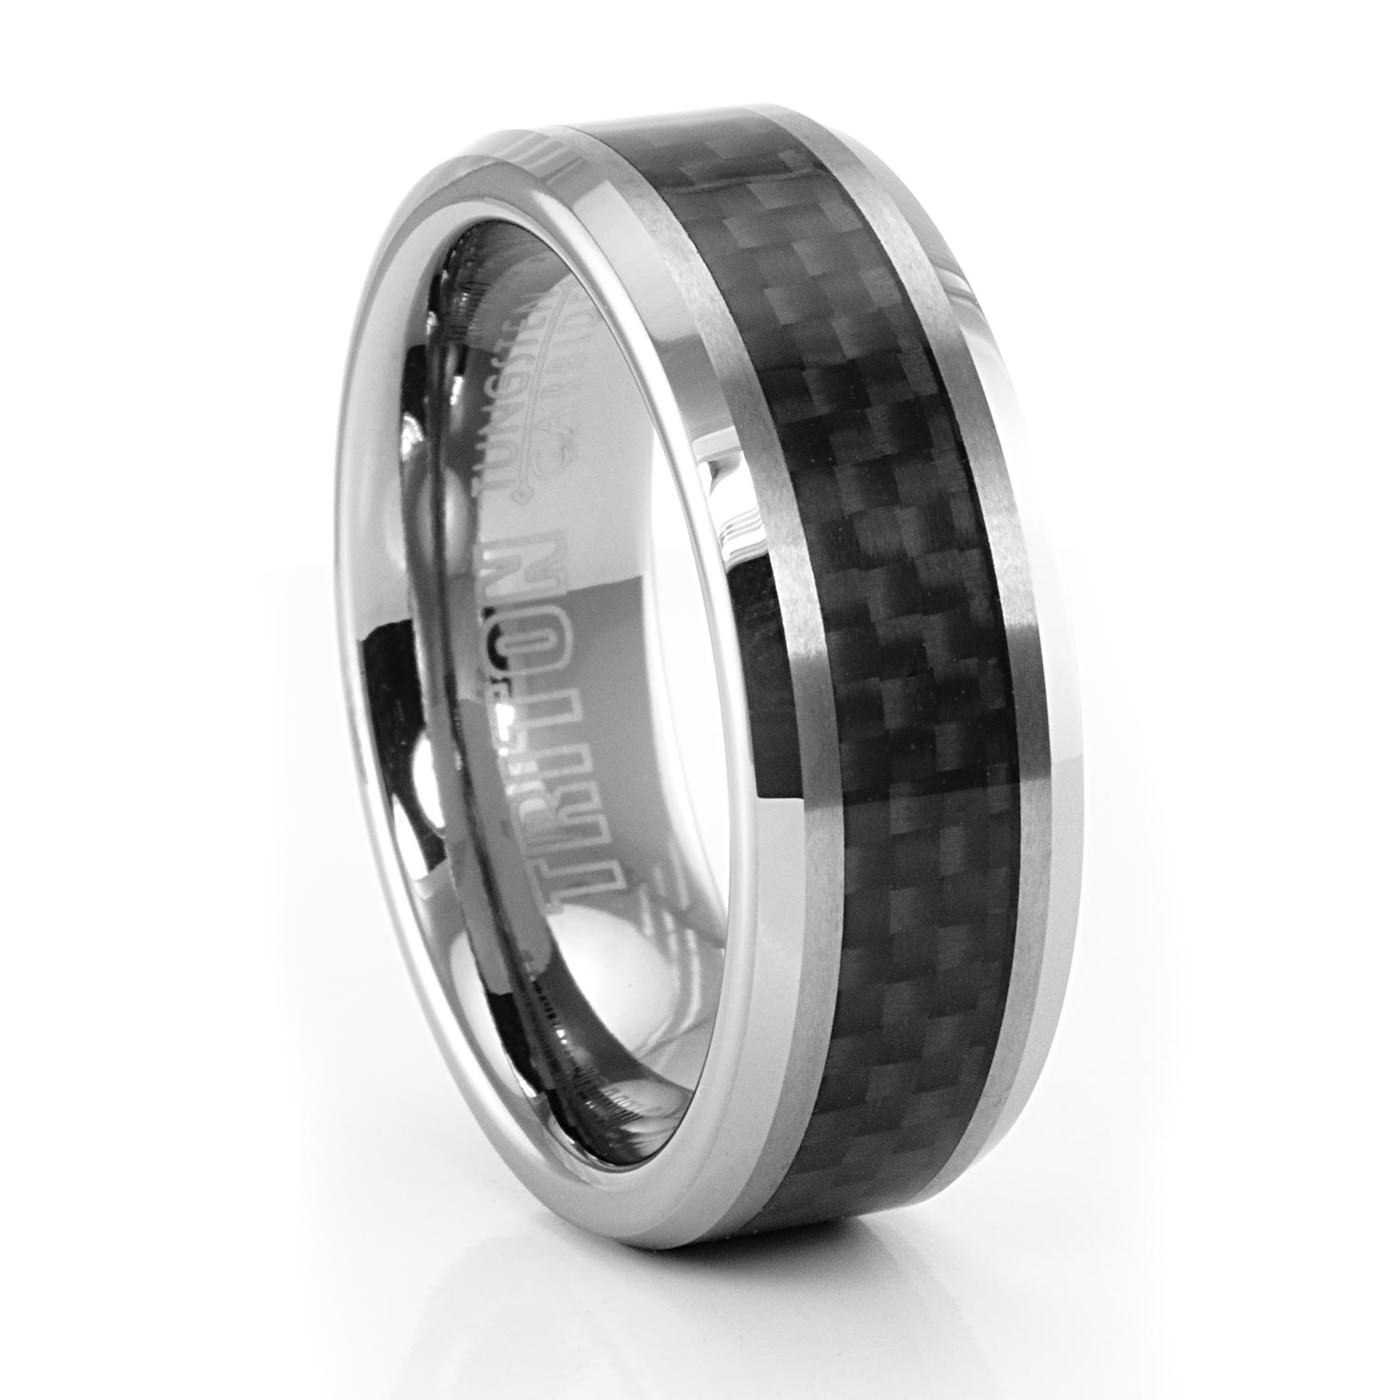 insert wedding with ring interior grain steel damascus carbon wood demascus rings products forged fiber